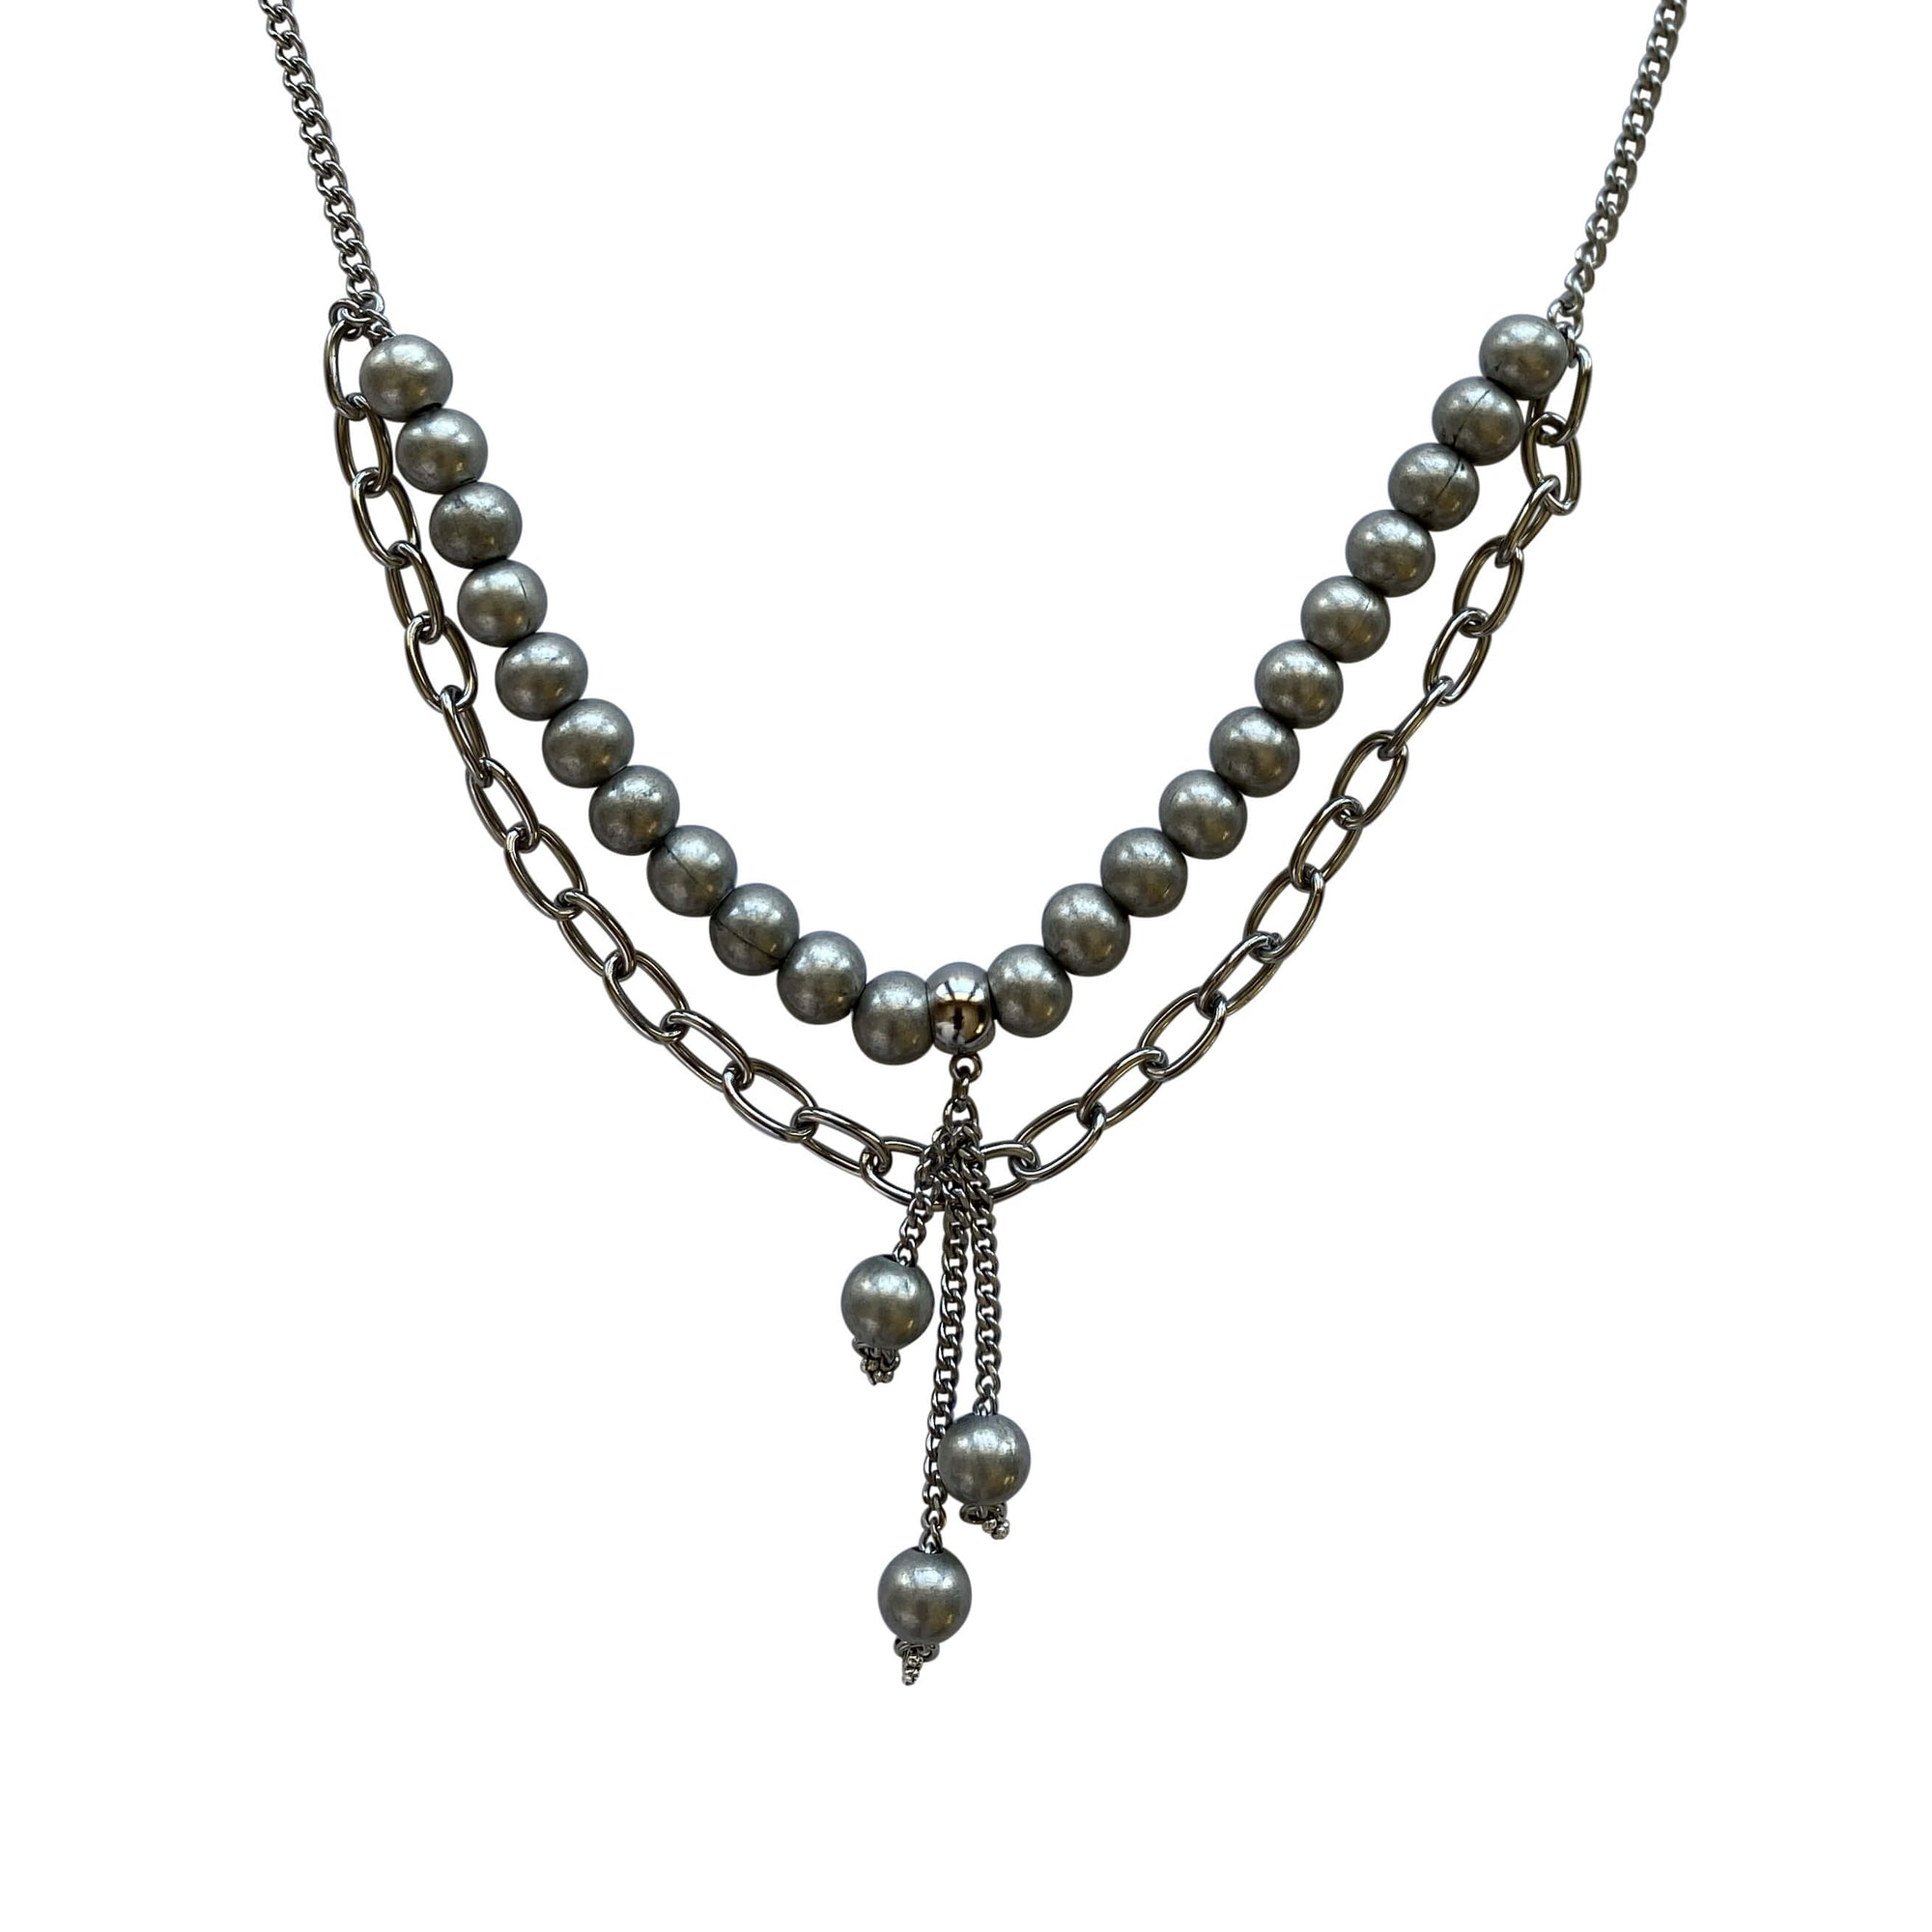 Stainless Steel Chain Steel Round Bead Pendant Necklace with Toggle Clasp